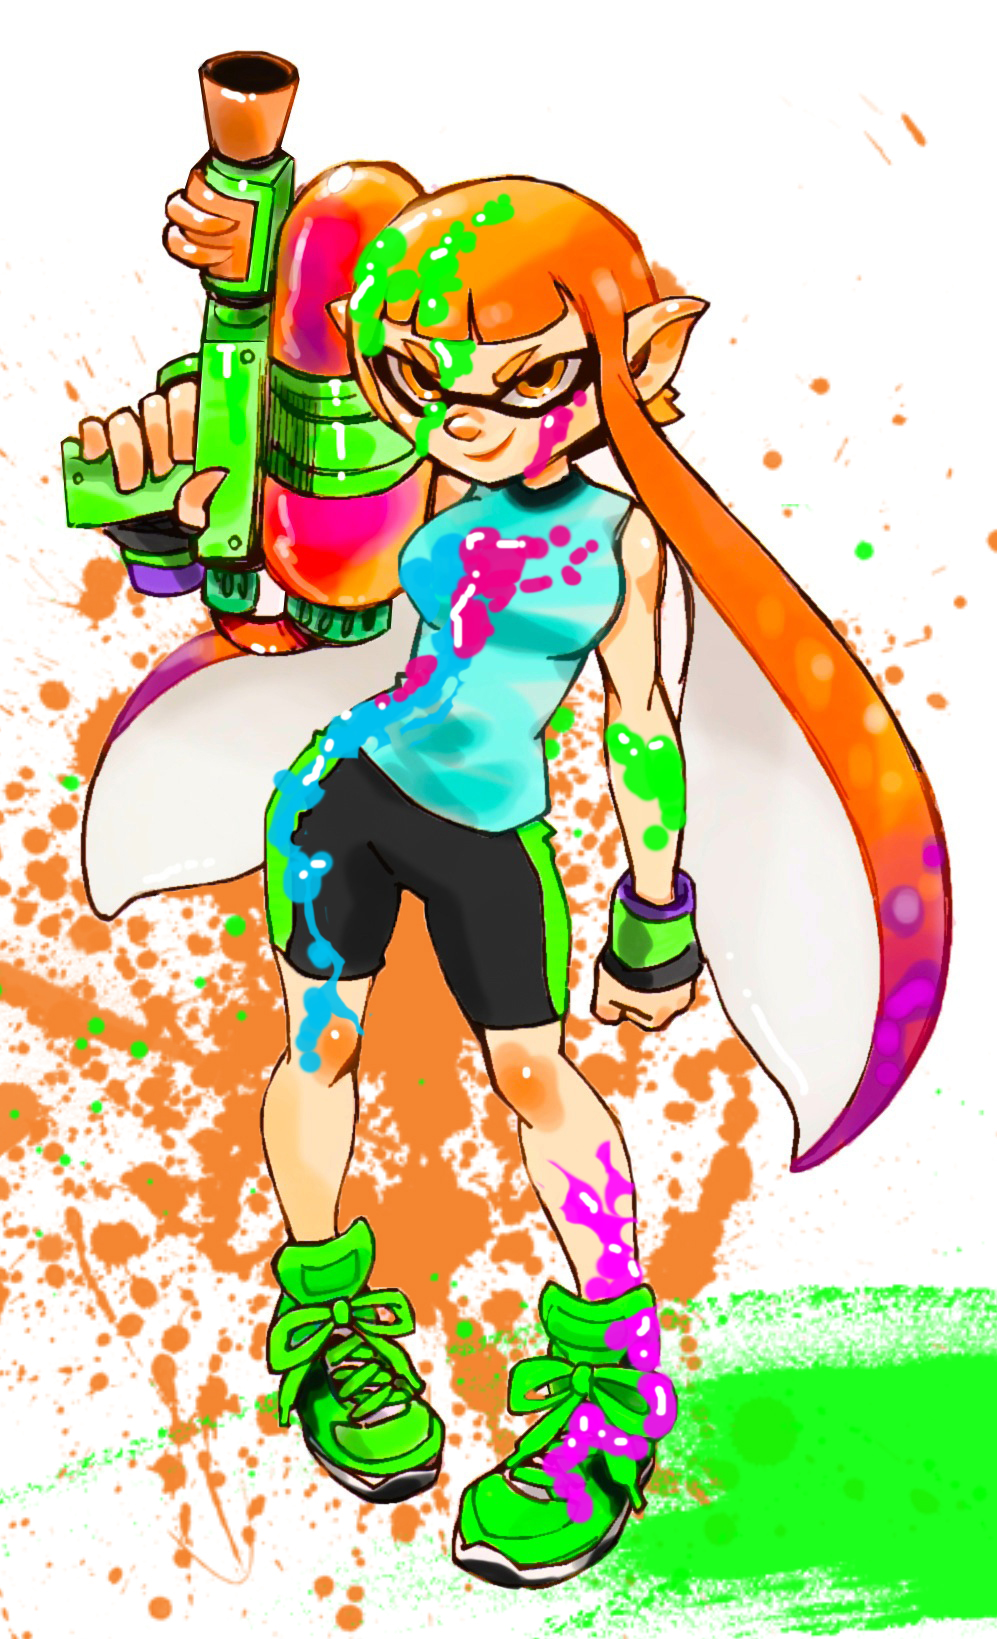 Topic des fanarts Nintendo  - Page 36 New_ip_nintendo__splatoon__ink__by_zenox_furry_man-d7mc9bi